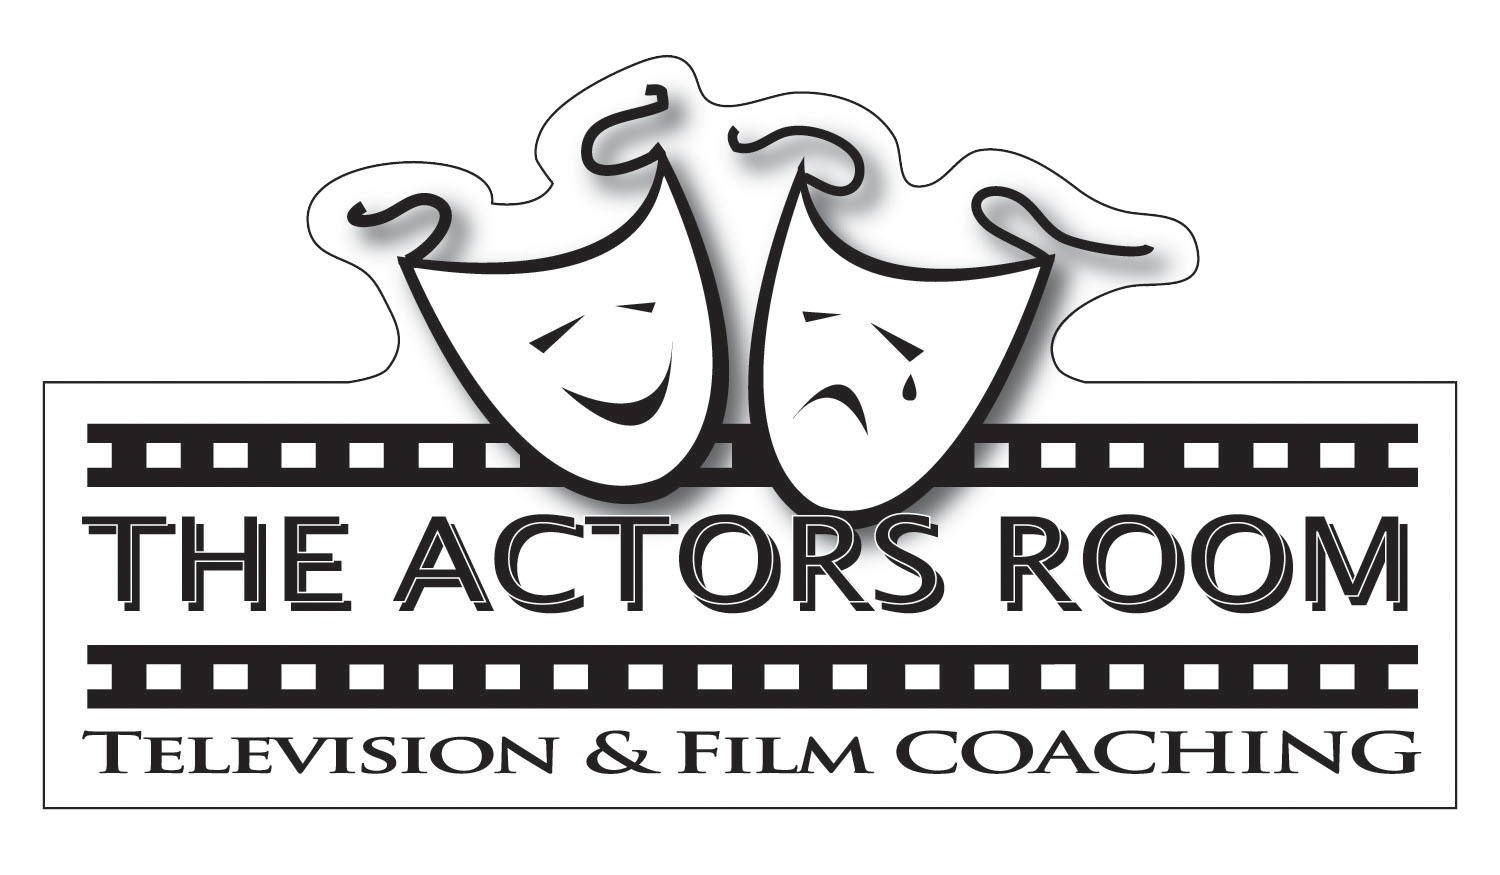 The Actors Room